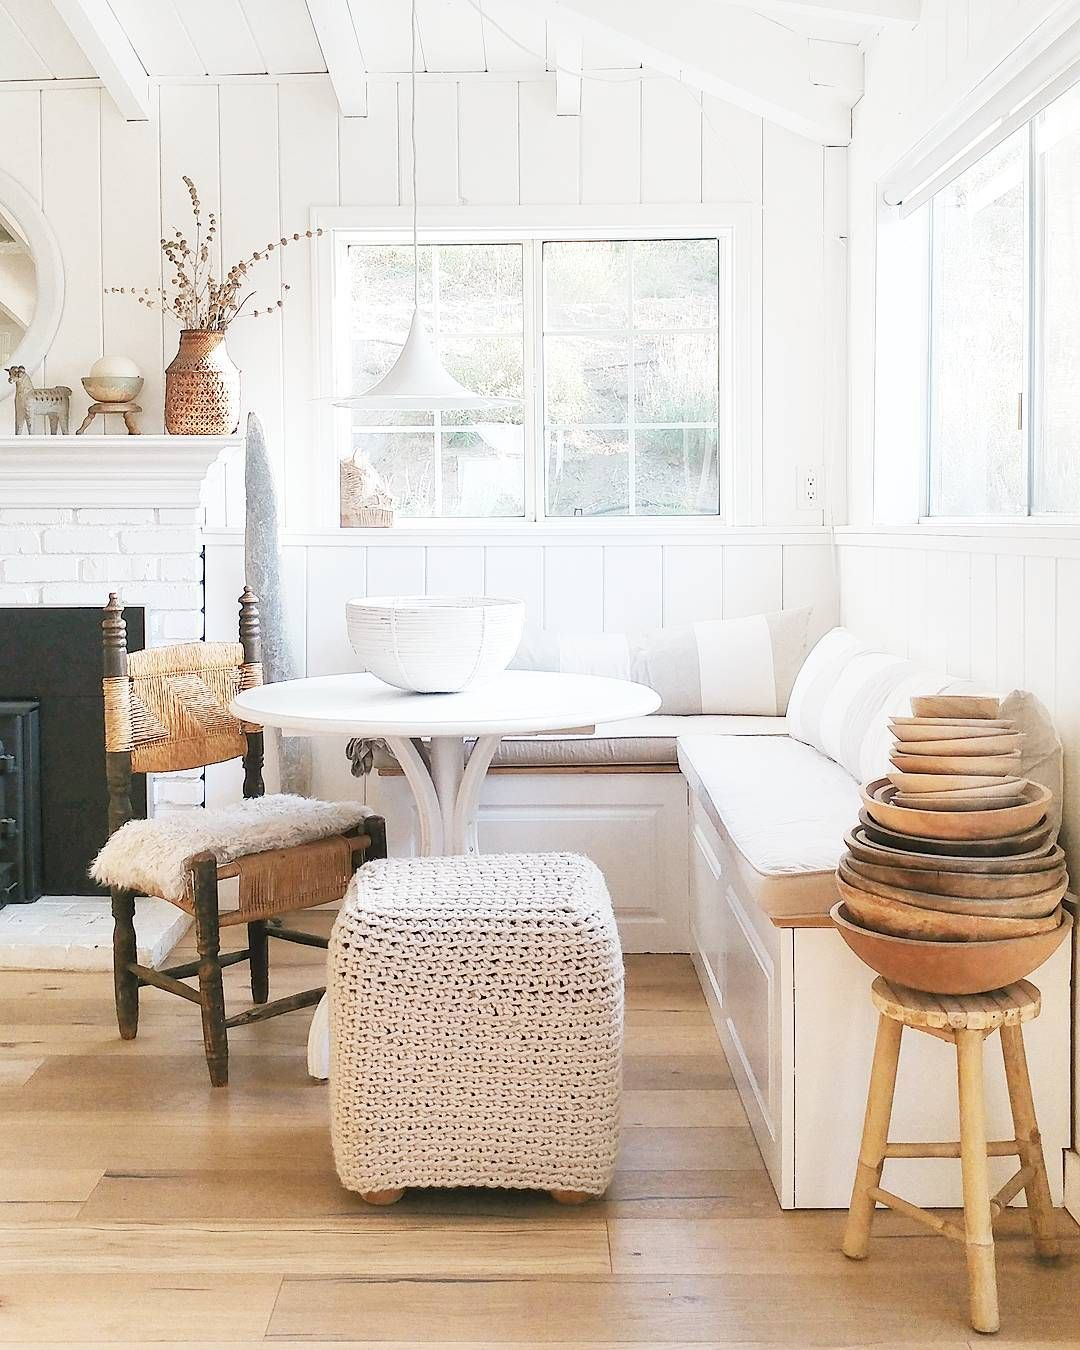 All Neutral Window Seat Breakfast Nook Banquette Seating In Kitchen Home My Scandinavian Home